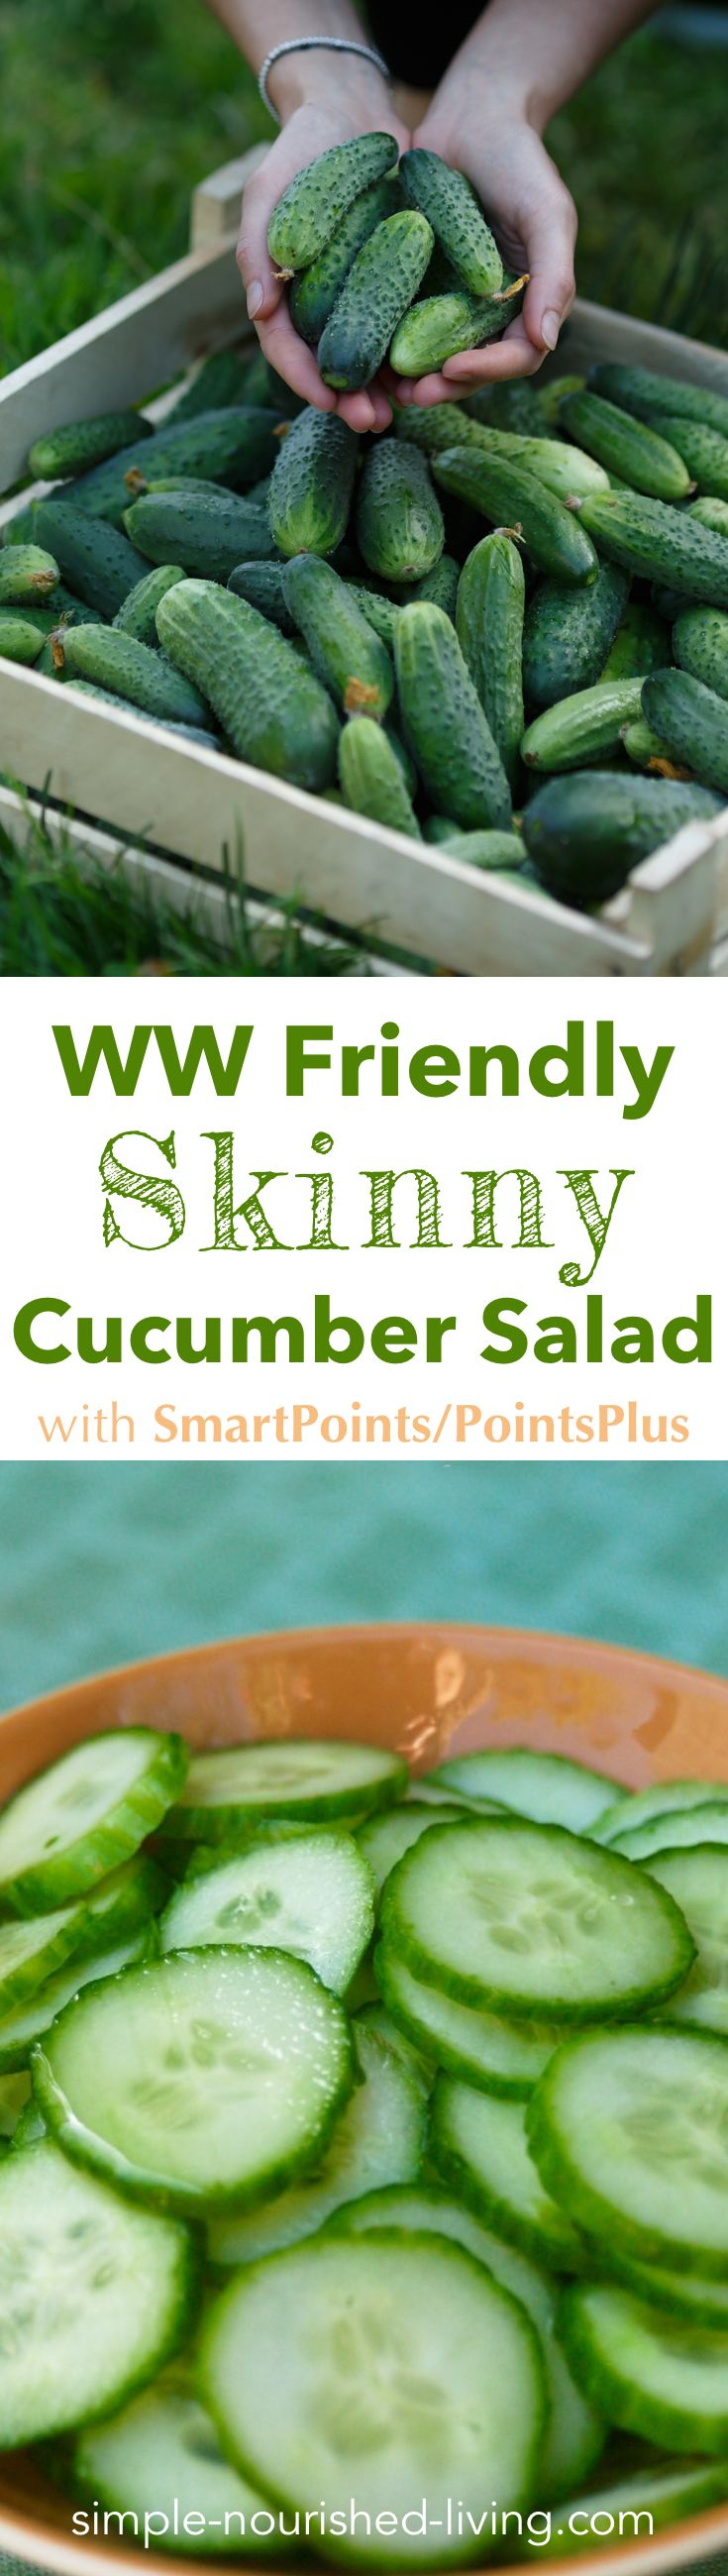 This simple Weight Watchers cucumber salad recipe comes together in less than ten minutes and is great on it's own as a low calorie snack. Or, as a side dish for lunch or supper. Only 36 calories, *0 SmartPoints/PointsPlus.